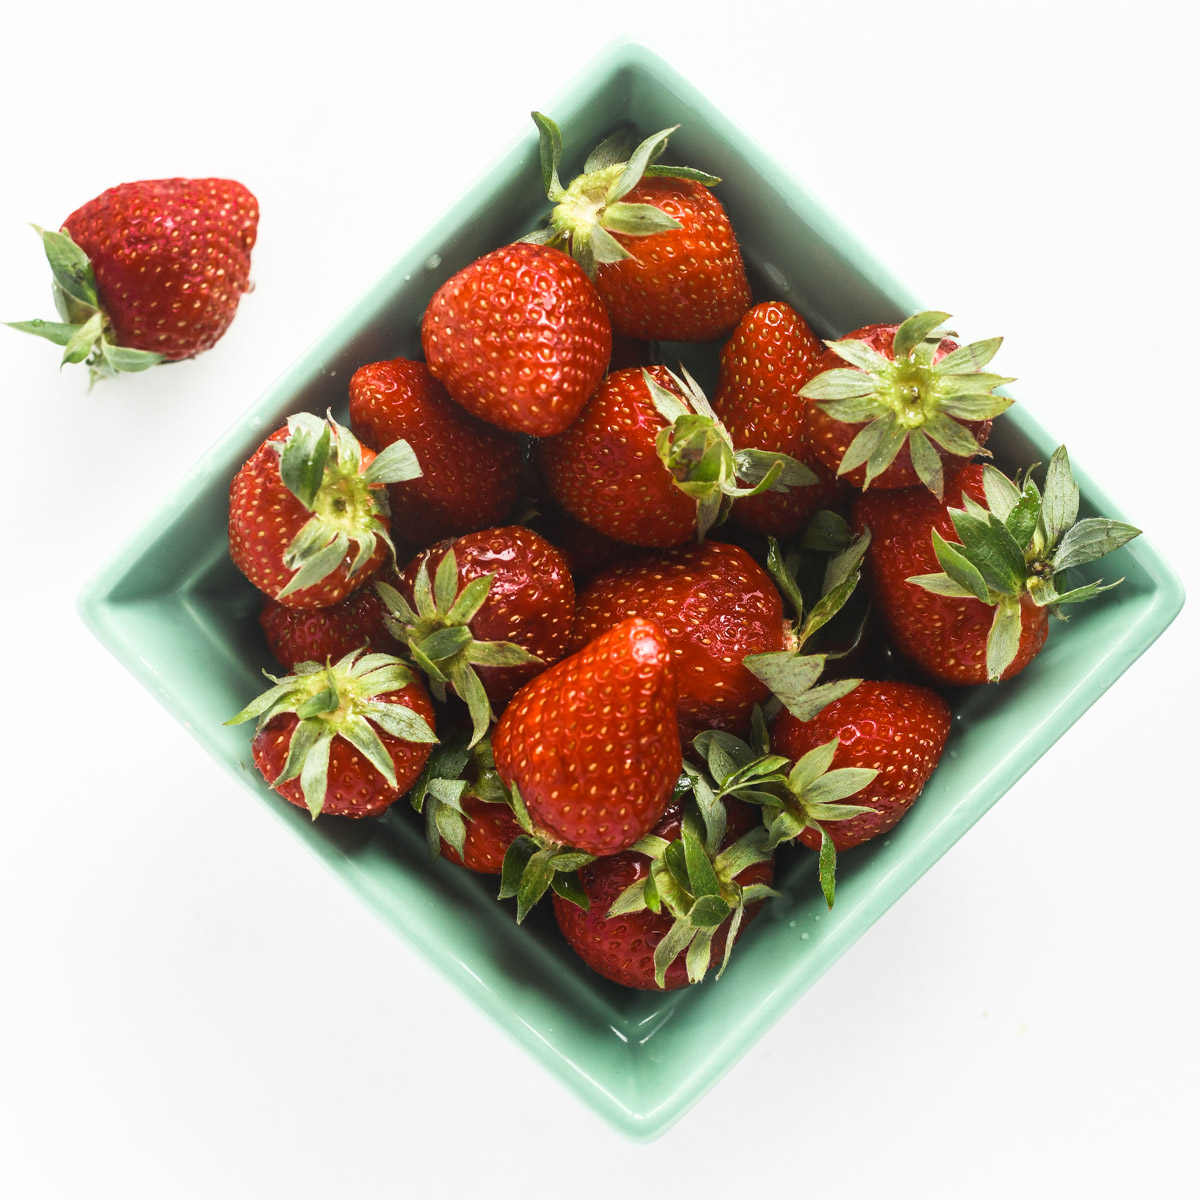 fresh strawberries in a pint container